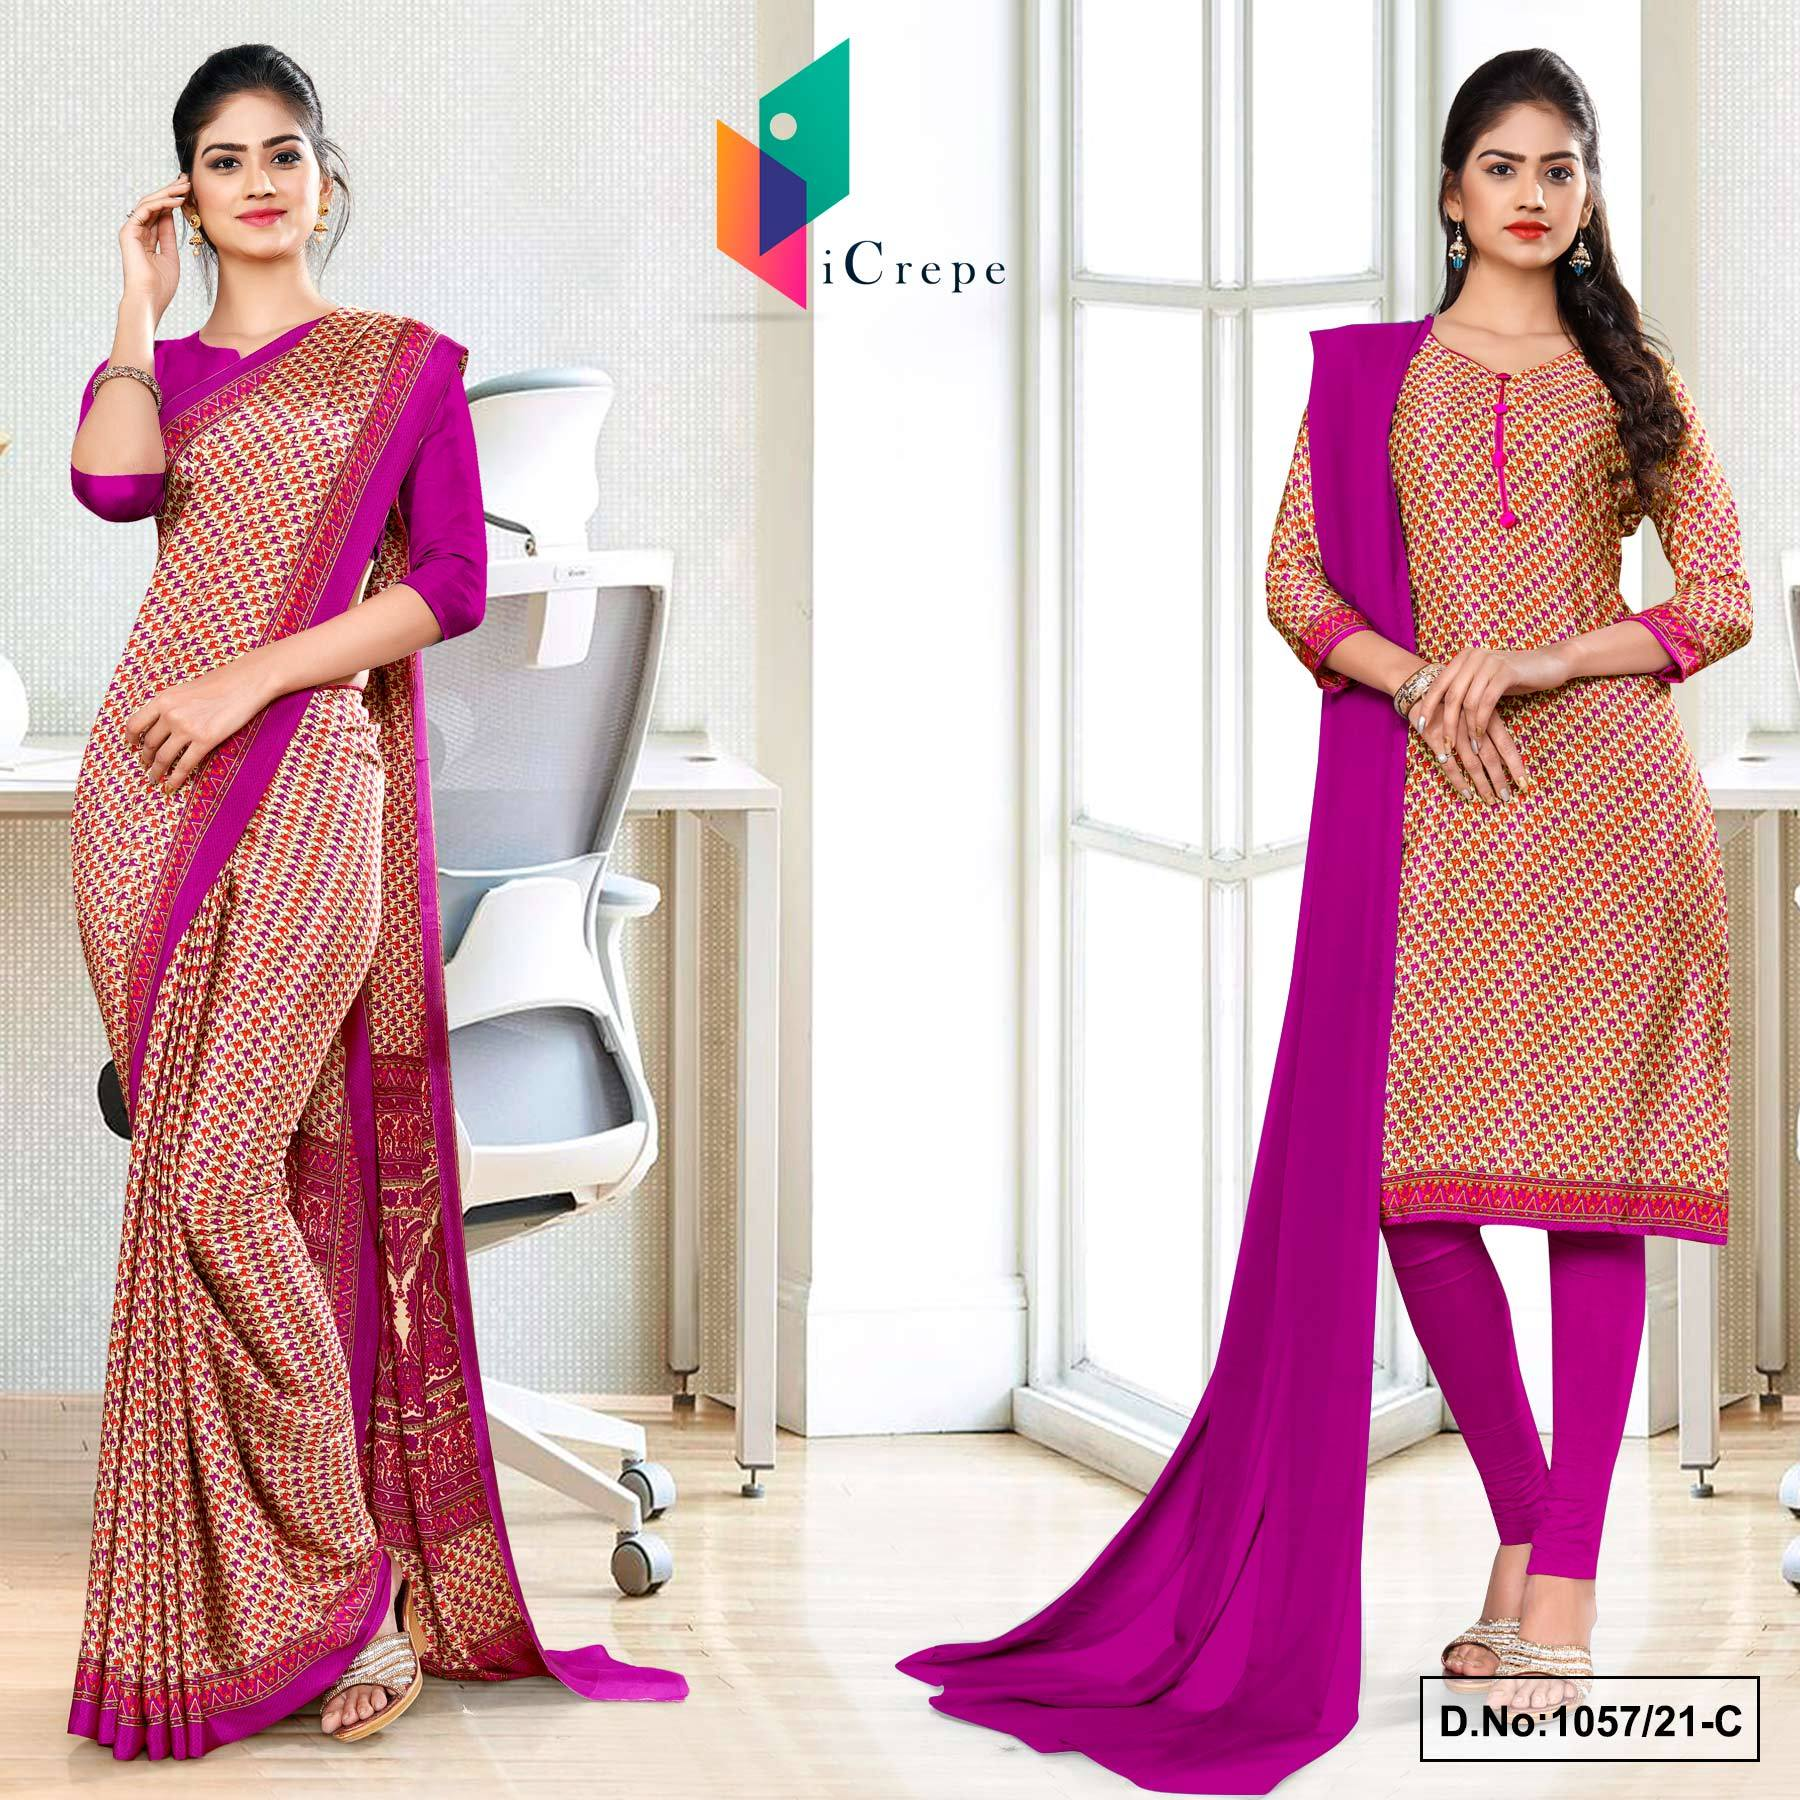 Beige Wine Small Print Premium Italian Silk Crepe Uniform Saree Salwar Combo for Workers